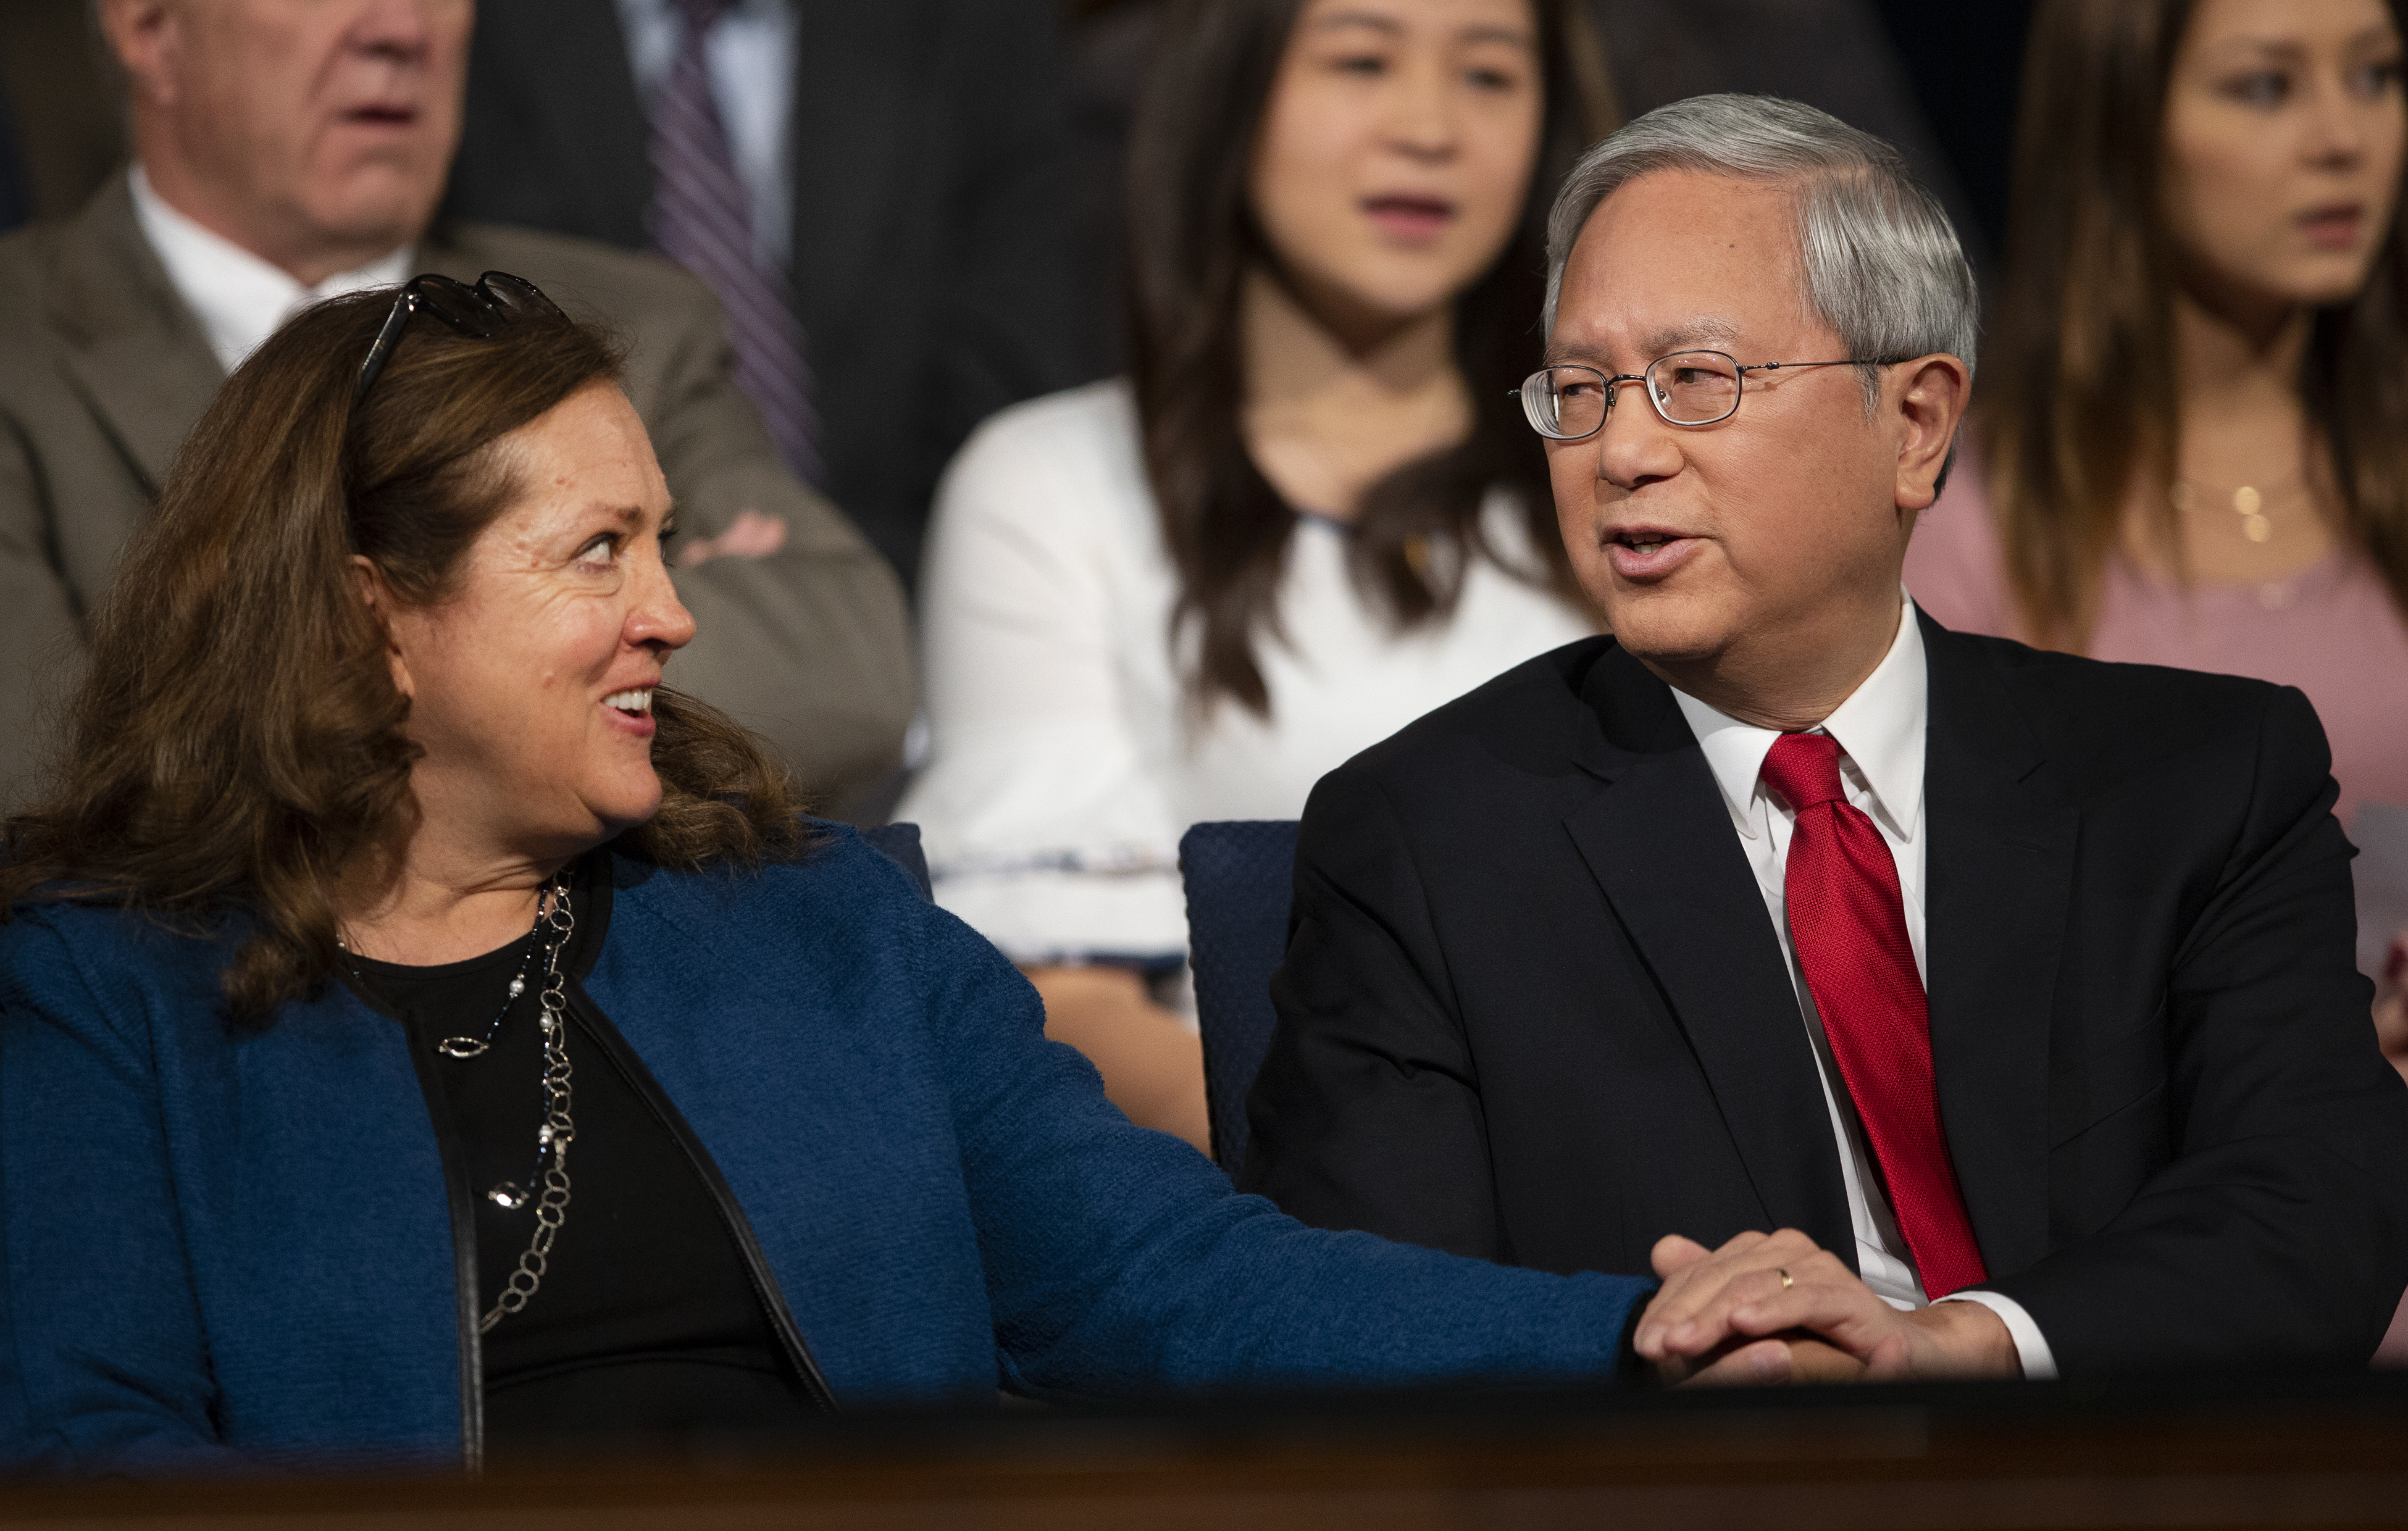 Sister Susan Gong looks over at her husband, Elder Gerrit W. Gong of the Quorum of the Twelve Apostles, prior to him speaking at a BYU campus devotional on Tuesday, Oct. 16, 2018.